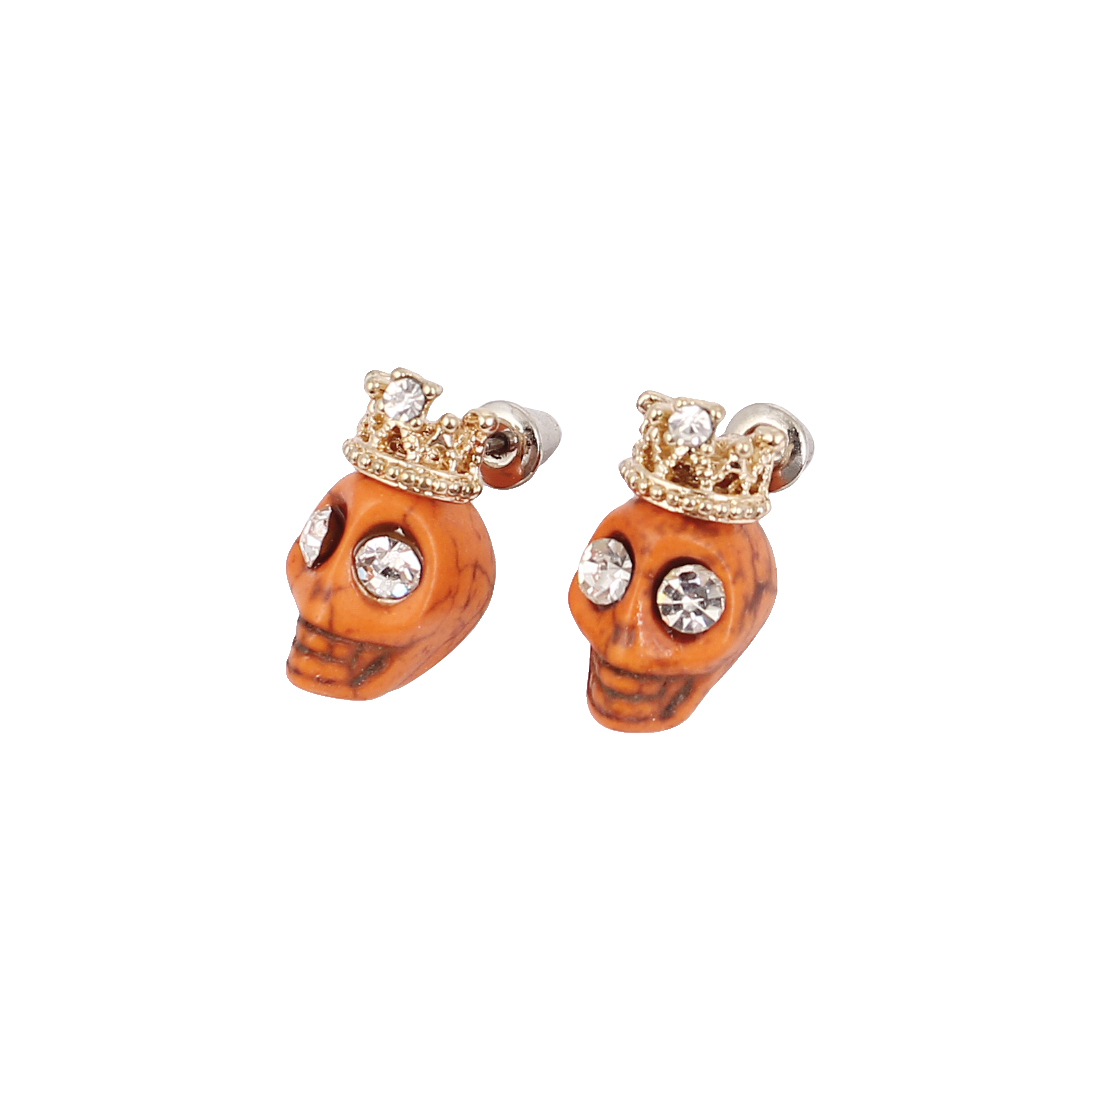 Pair Gold Tone Crown Orange Plastic Skull Shaped Stud Earrings Ear Nails Pins for Woman